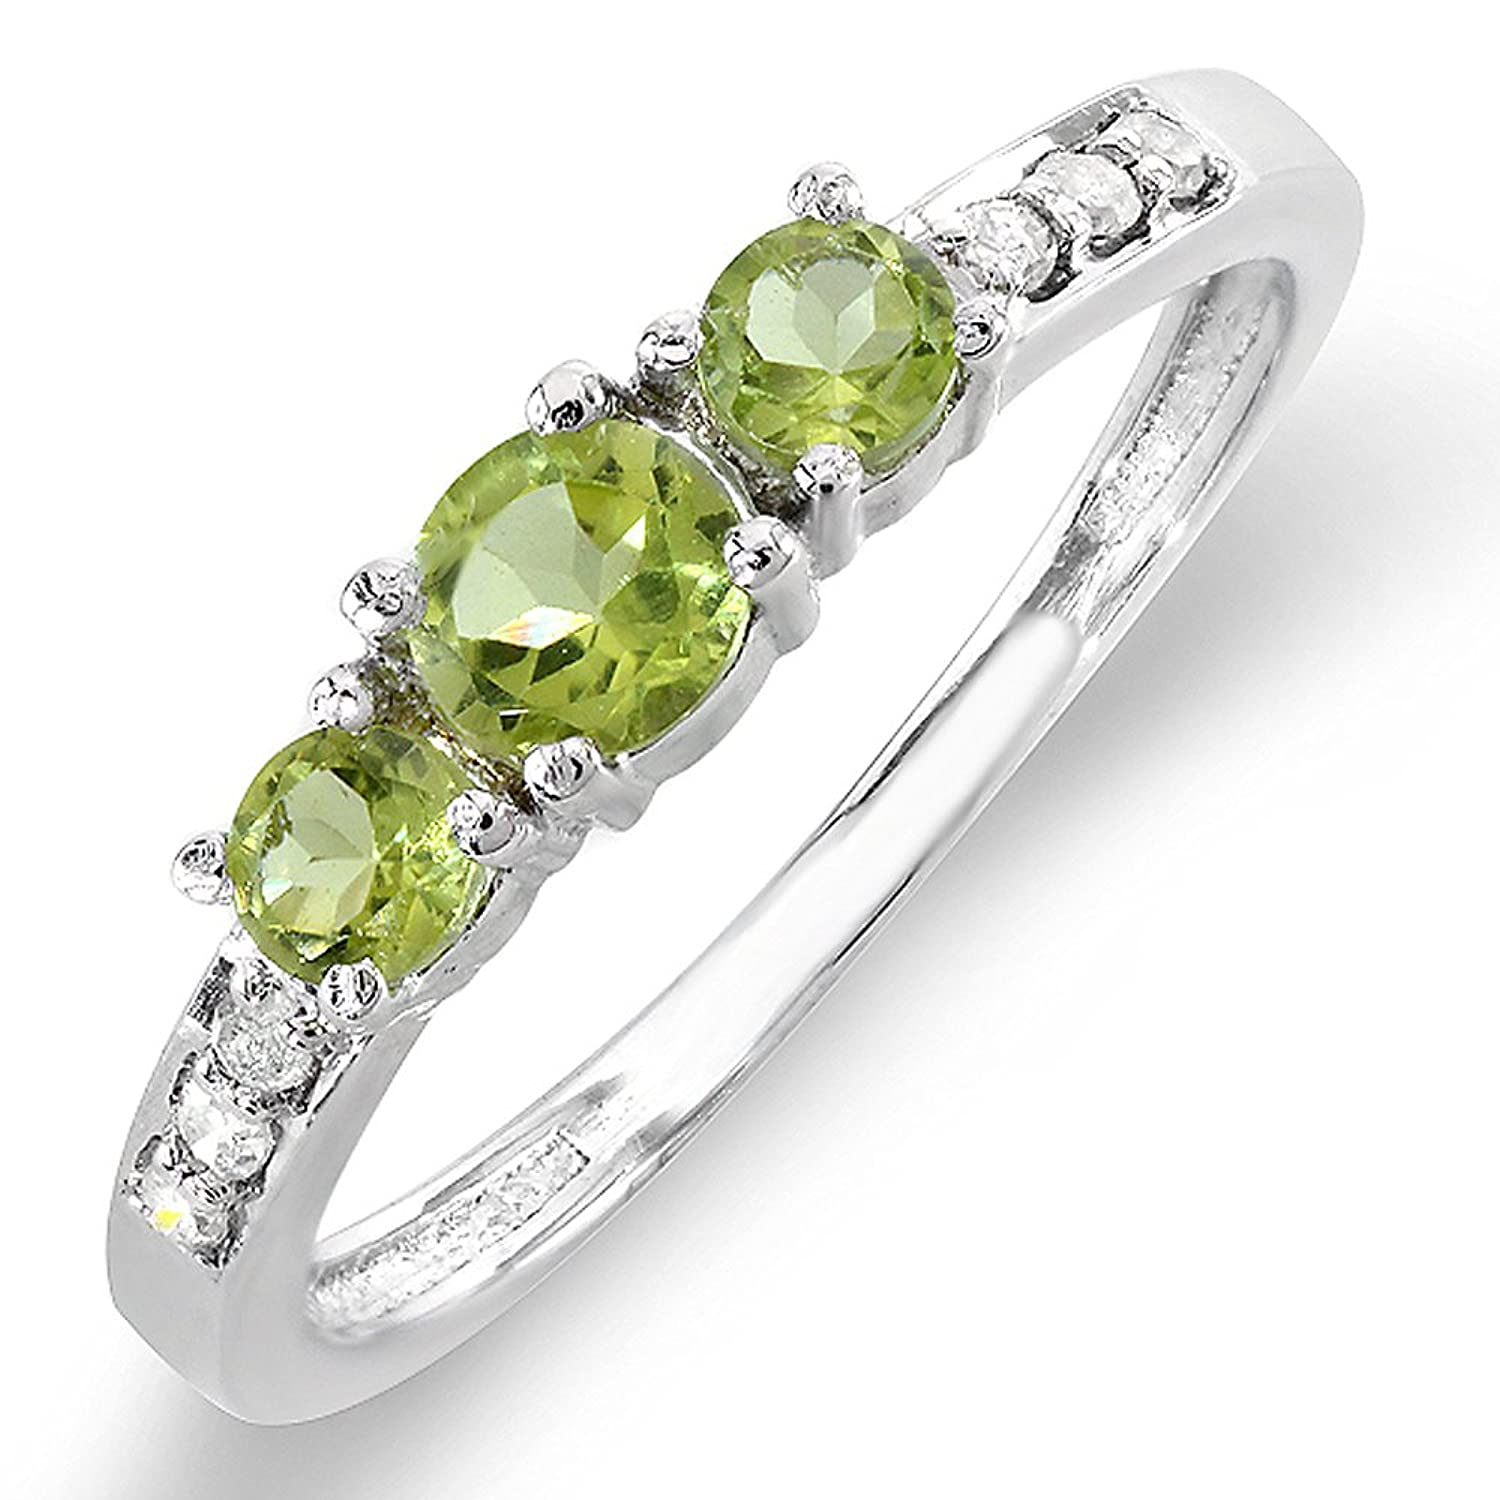 gold for rings solid ct ring natural products yellow wedding diamond side genuine stone gemstone fine peridot gem with lohaspie beautiful jewelry